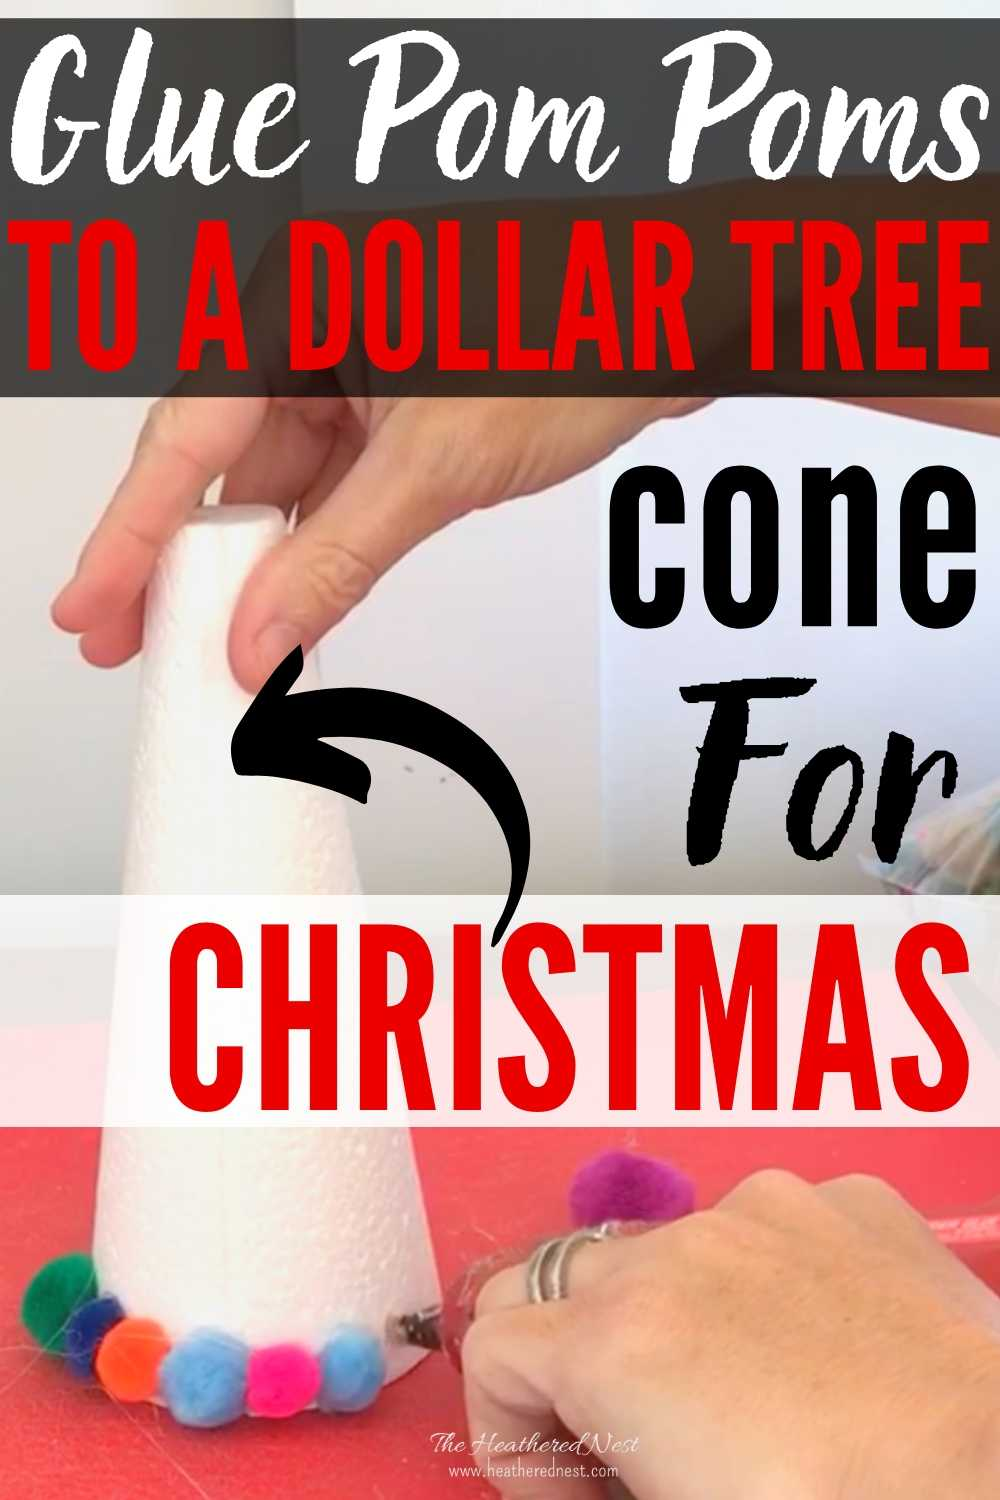 Here's an easy Christmas Tree Craft Idea using items you can grab at the Dollar Store or Dollar Tree. You'll need a styrofoam cone, pom poms and hot glue to start.